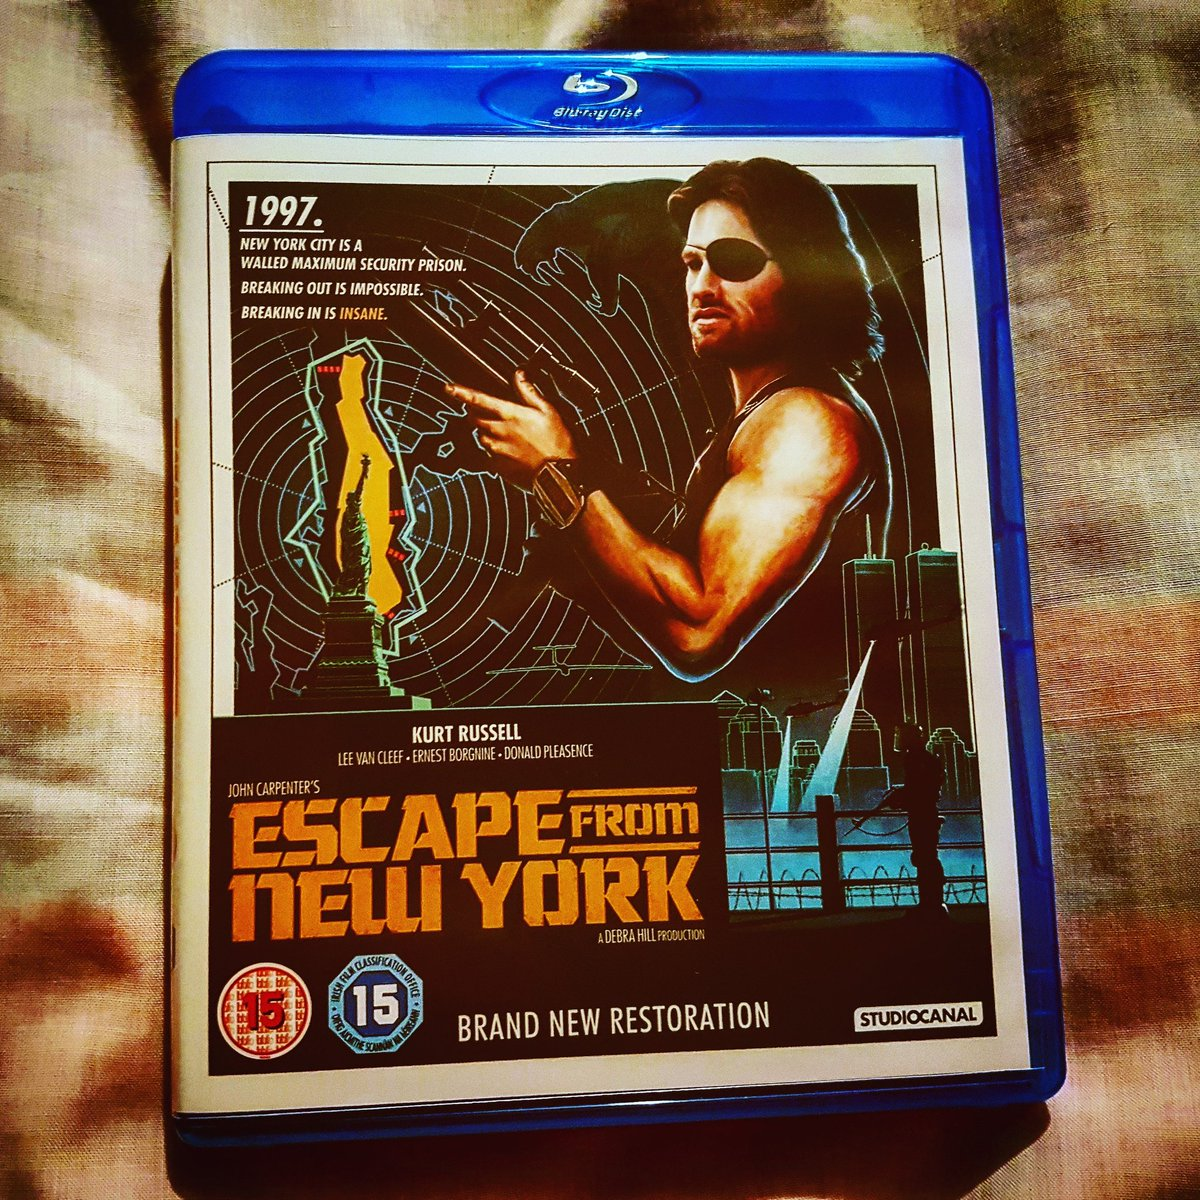 it's the return of the #sundaynightmovie ! This week this classic #johncarpenter #escapefromnewyorkpic.twitter.com/0T4N5OslwA